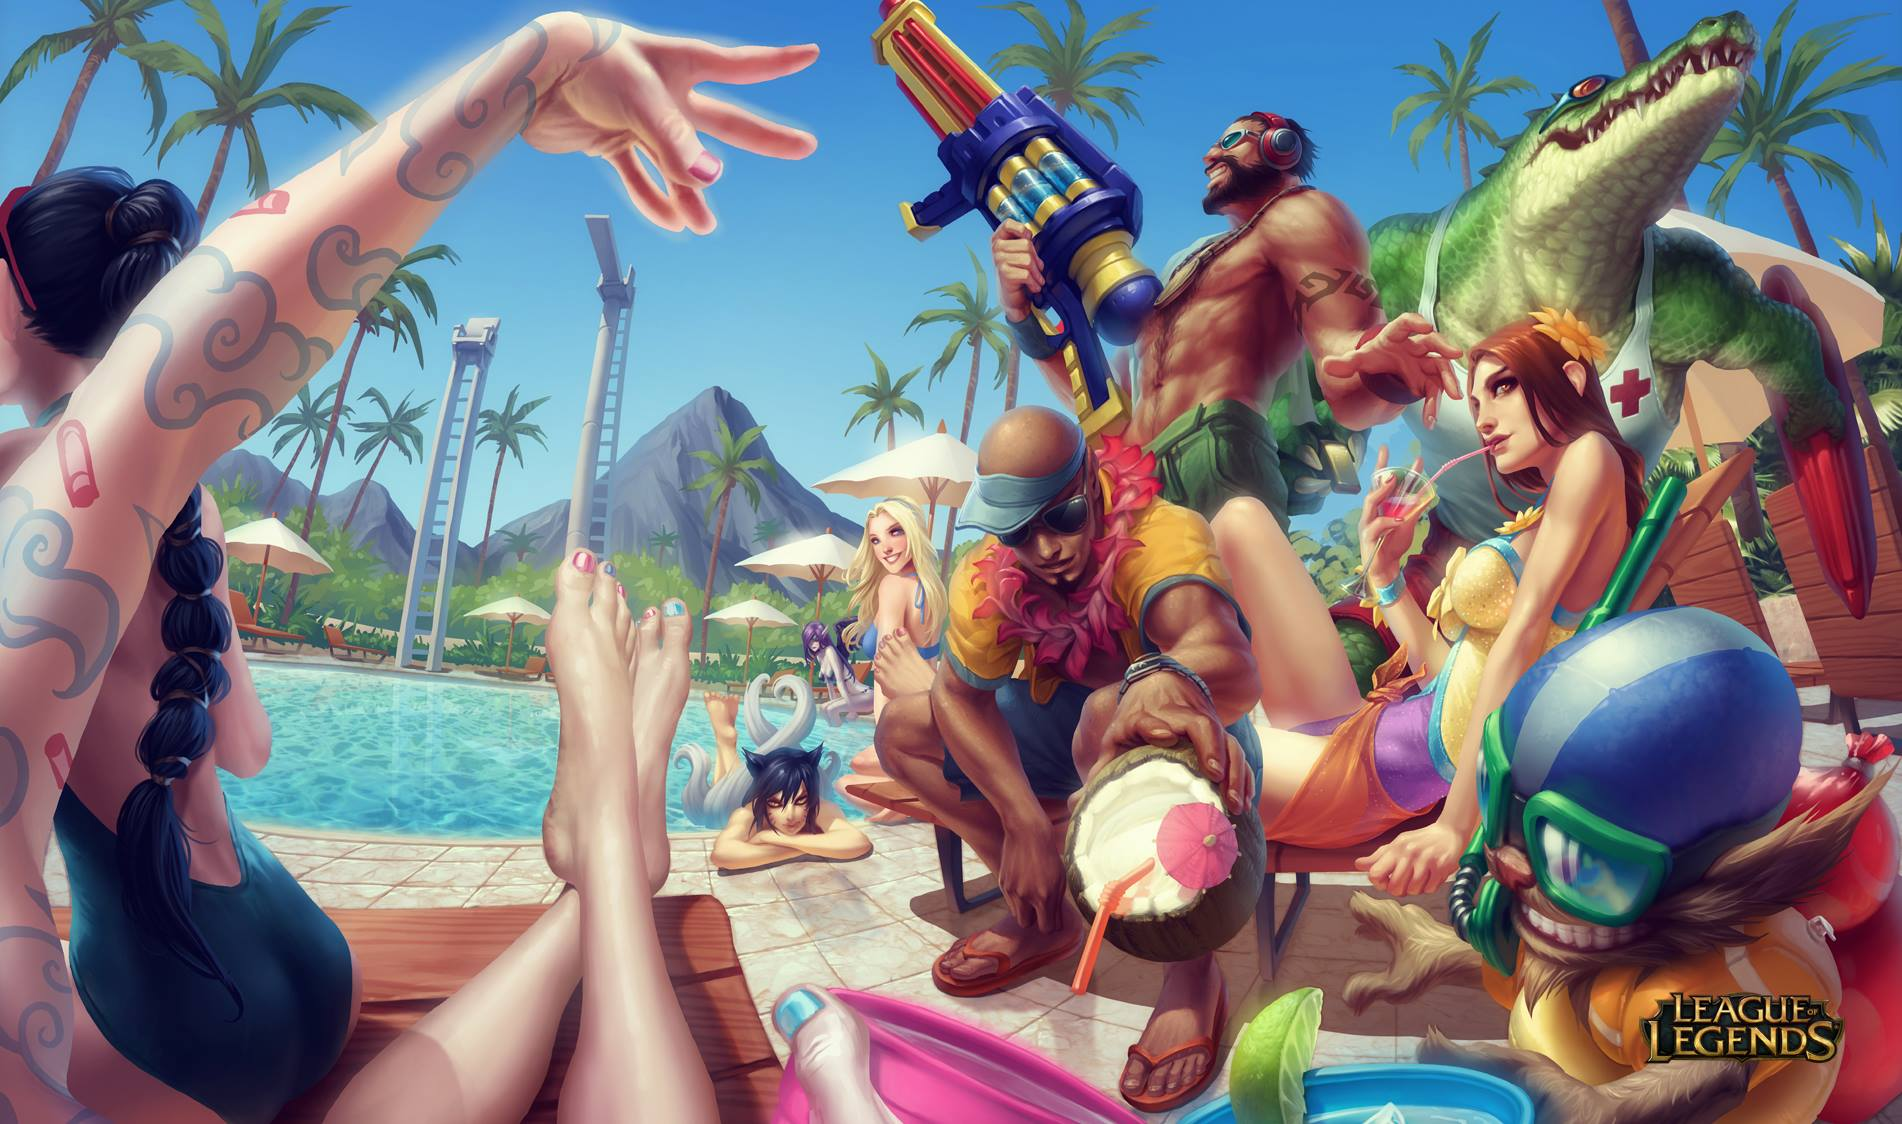 League of Legends - Pool Party! by alvinlee on DeviantArt